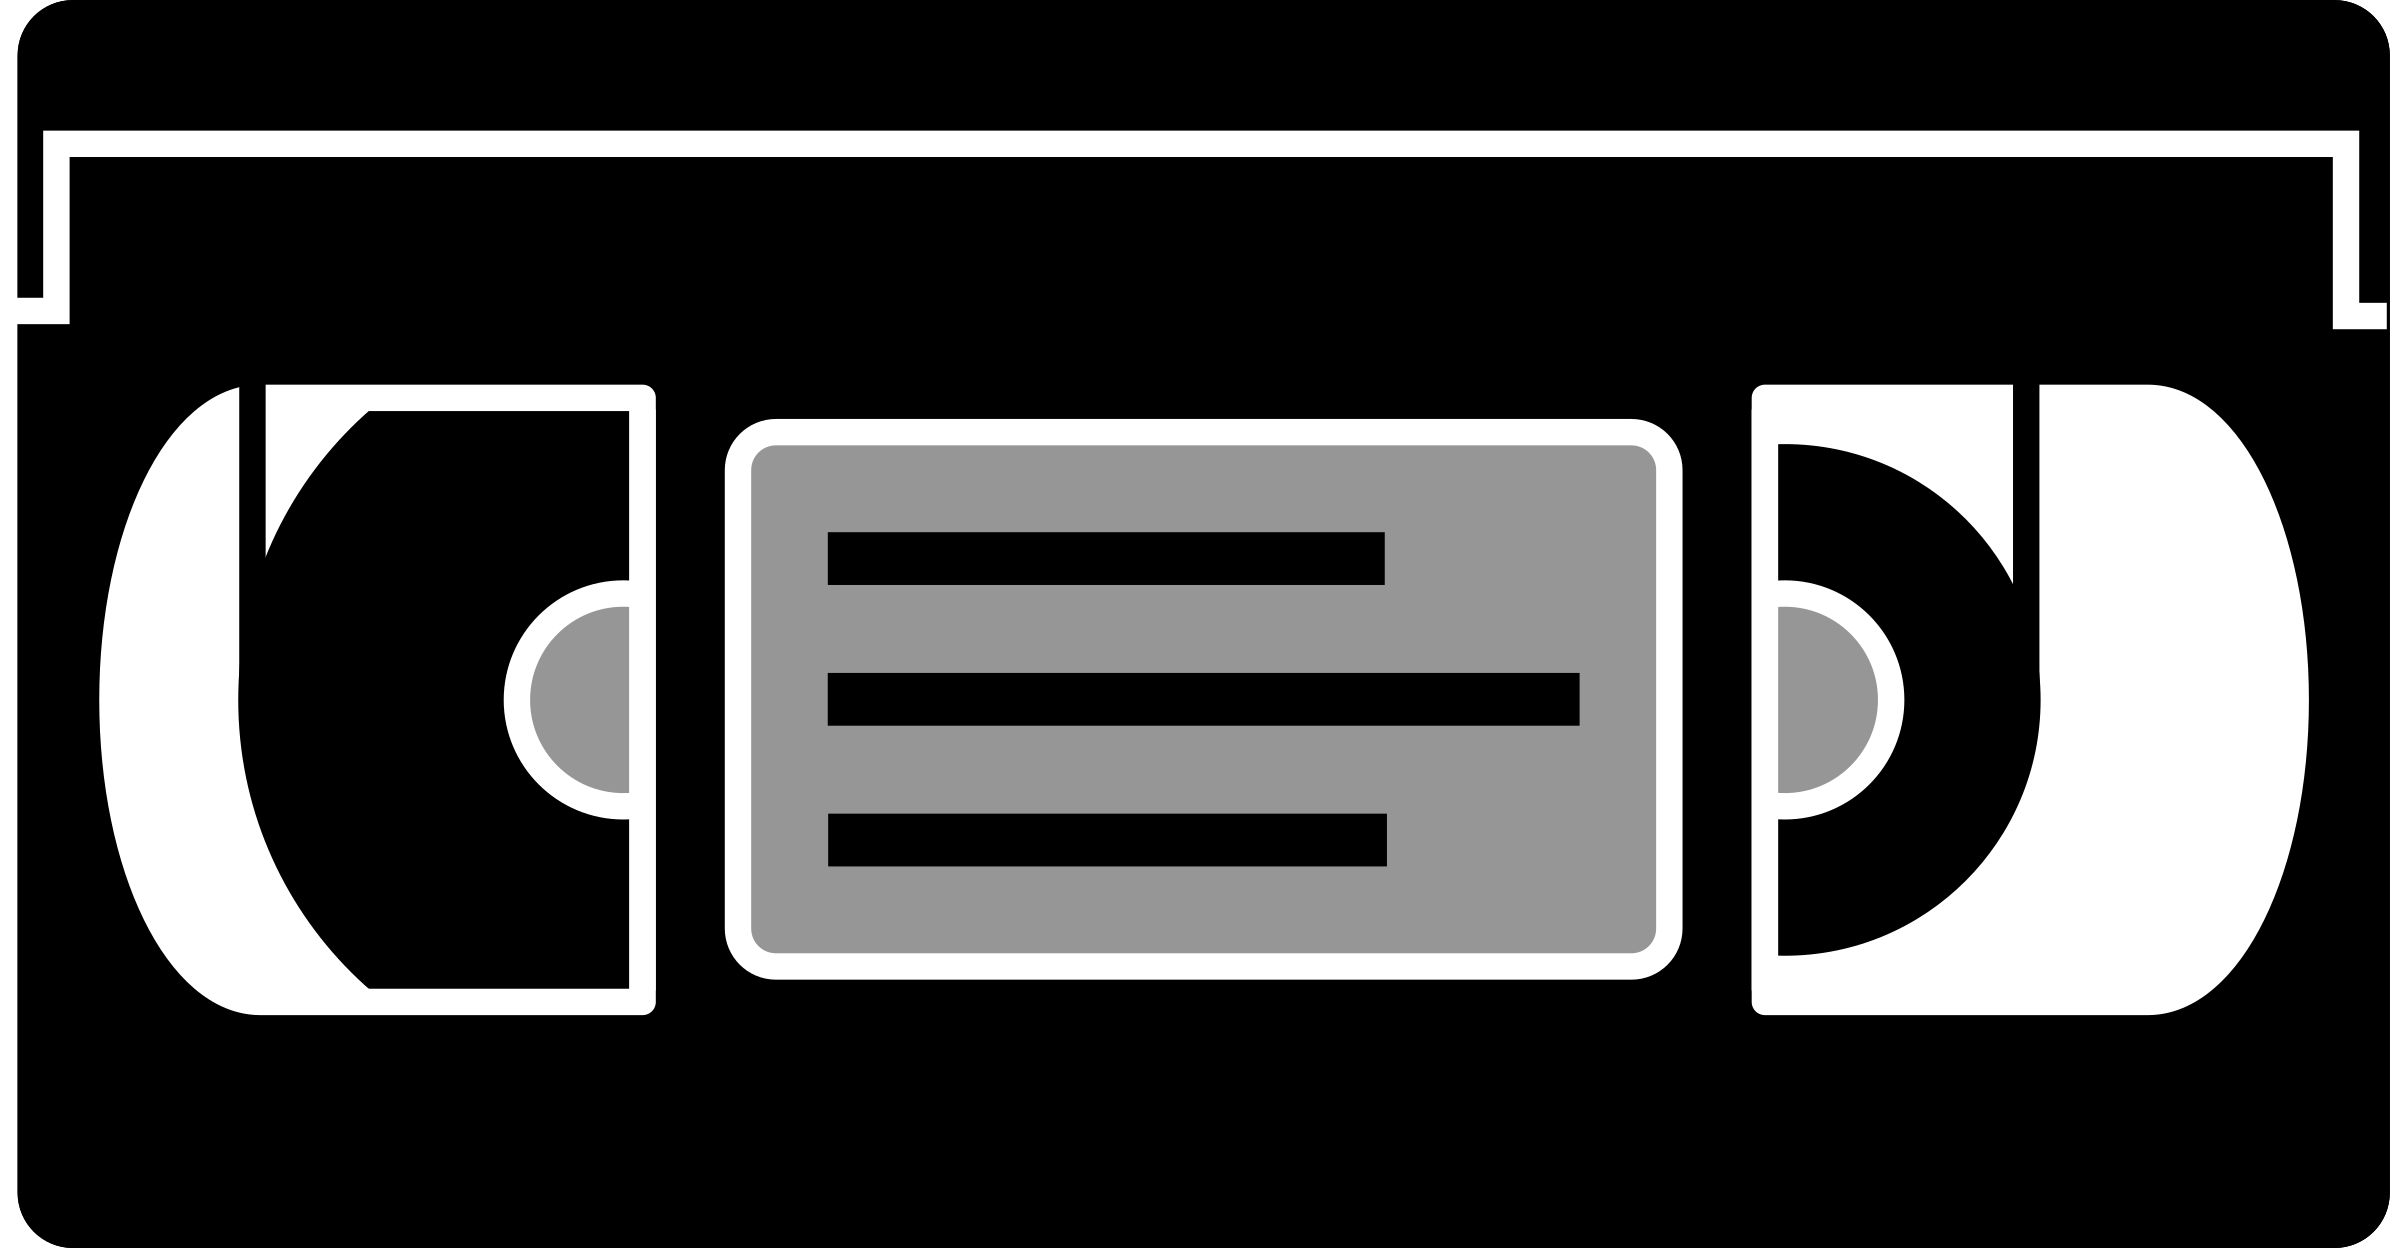 Tape clipart vhs tape. Simple big image png